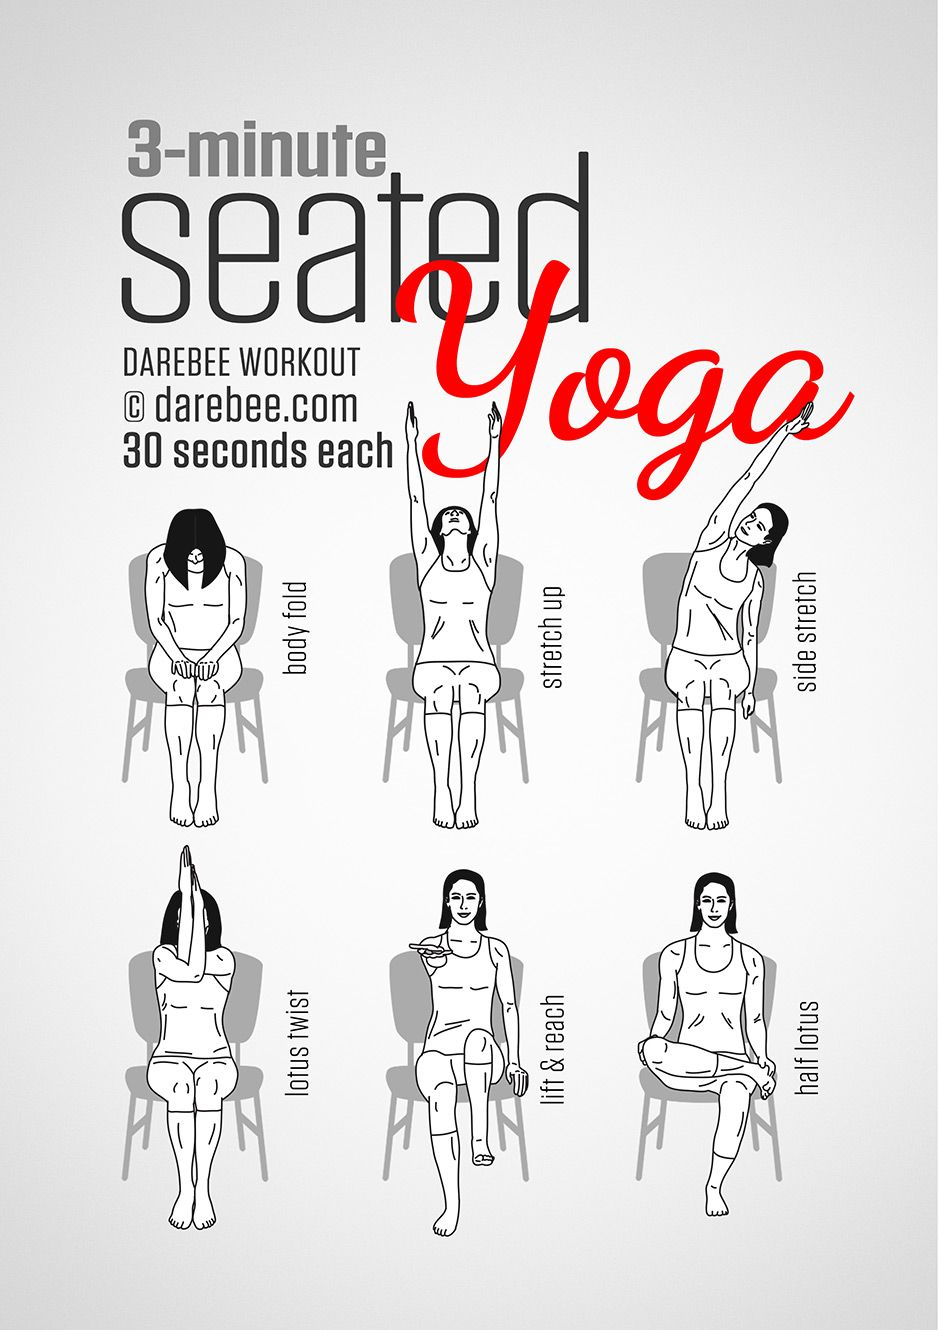 seated yoga workout. nice short routine for the chair! gaileee